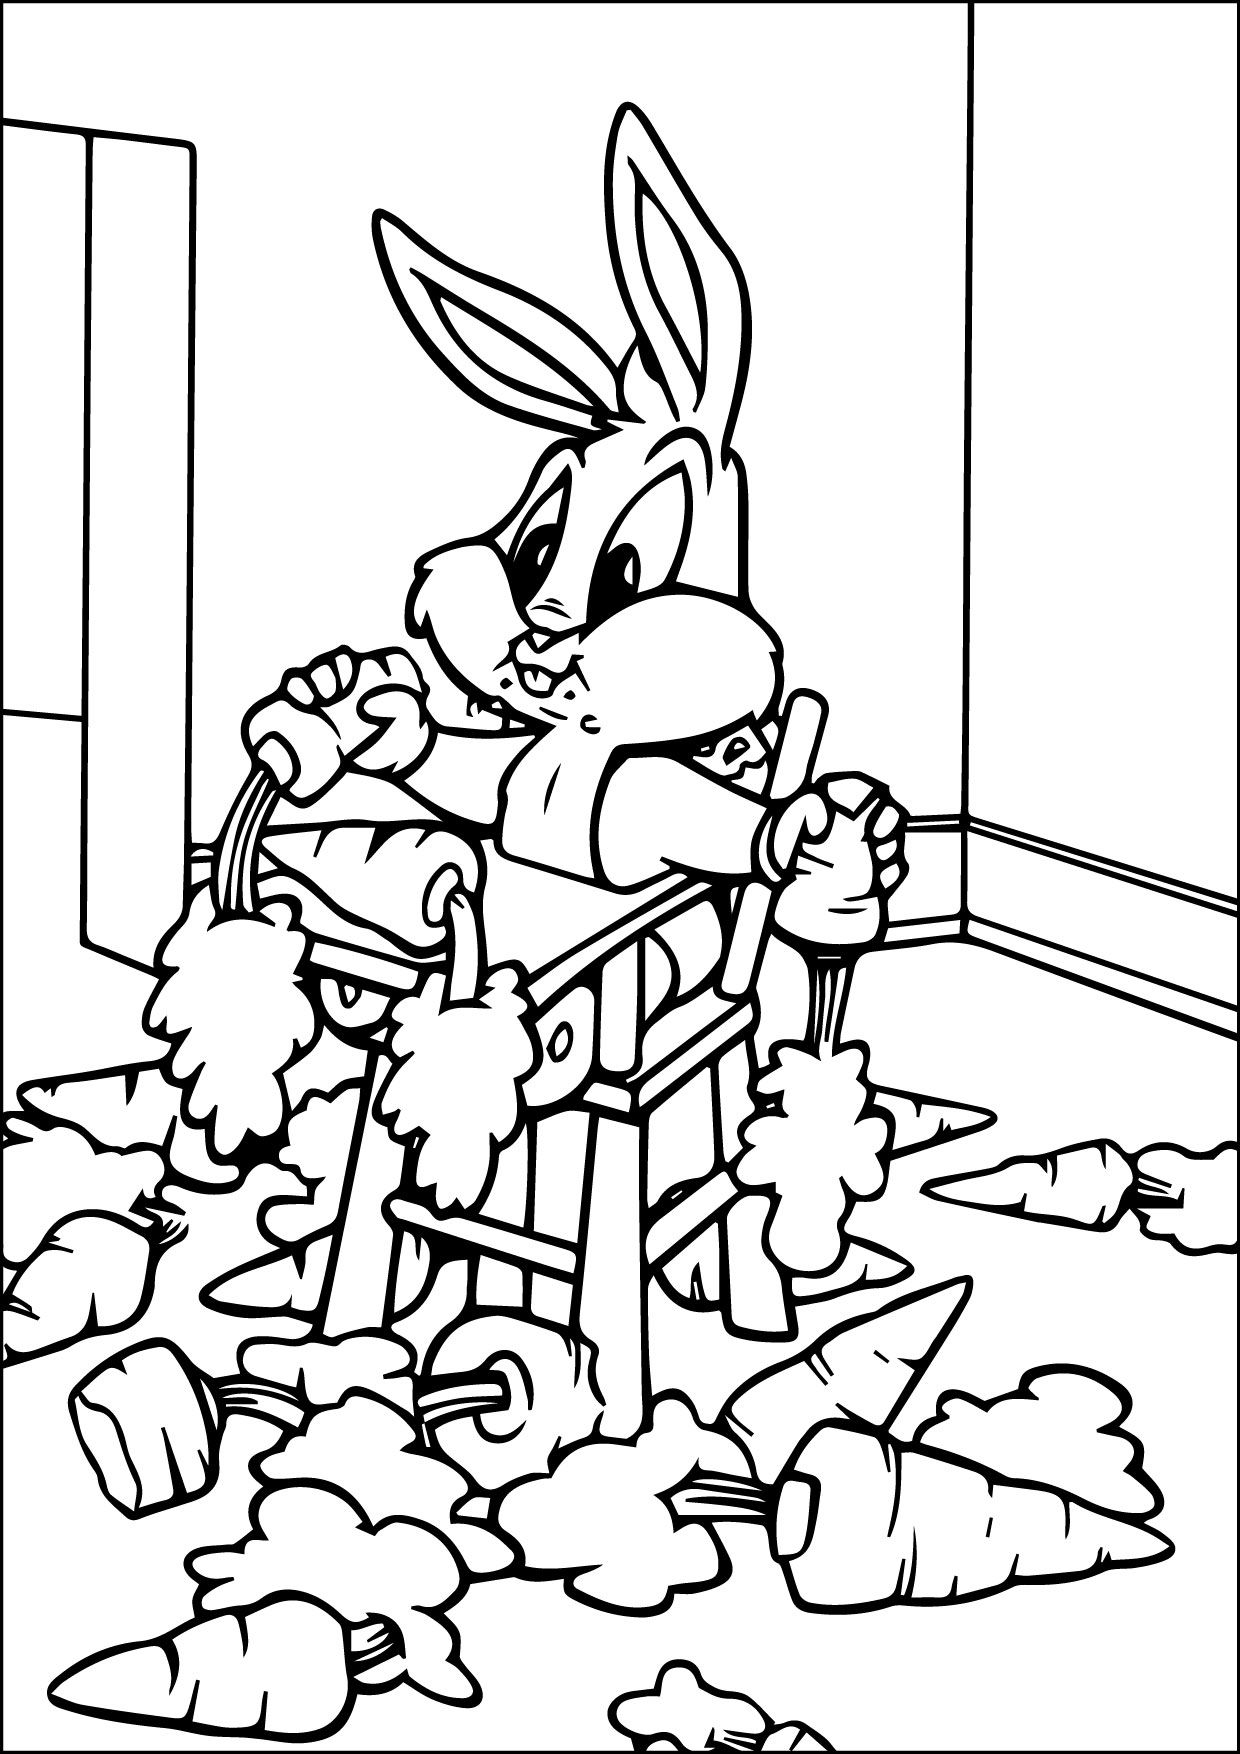 Cool Sami Fireman Coloring Pages 07 09 2015 055901 Check More At Http Www Mcoloring Com Ind Bunny Coloring Pages Cartoon Coloring Pages Disney Coloring Pages